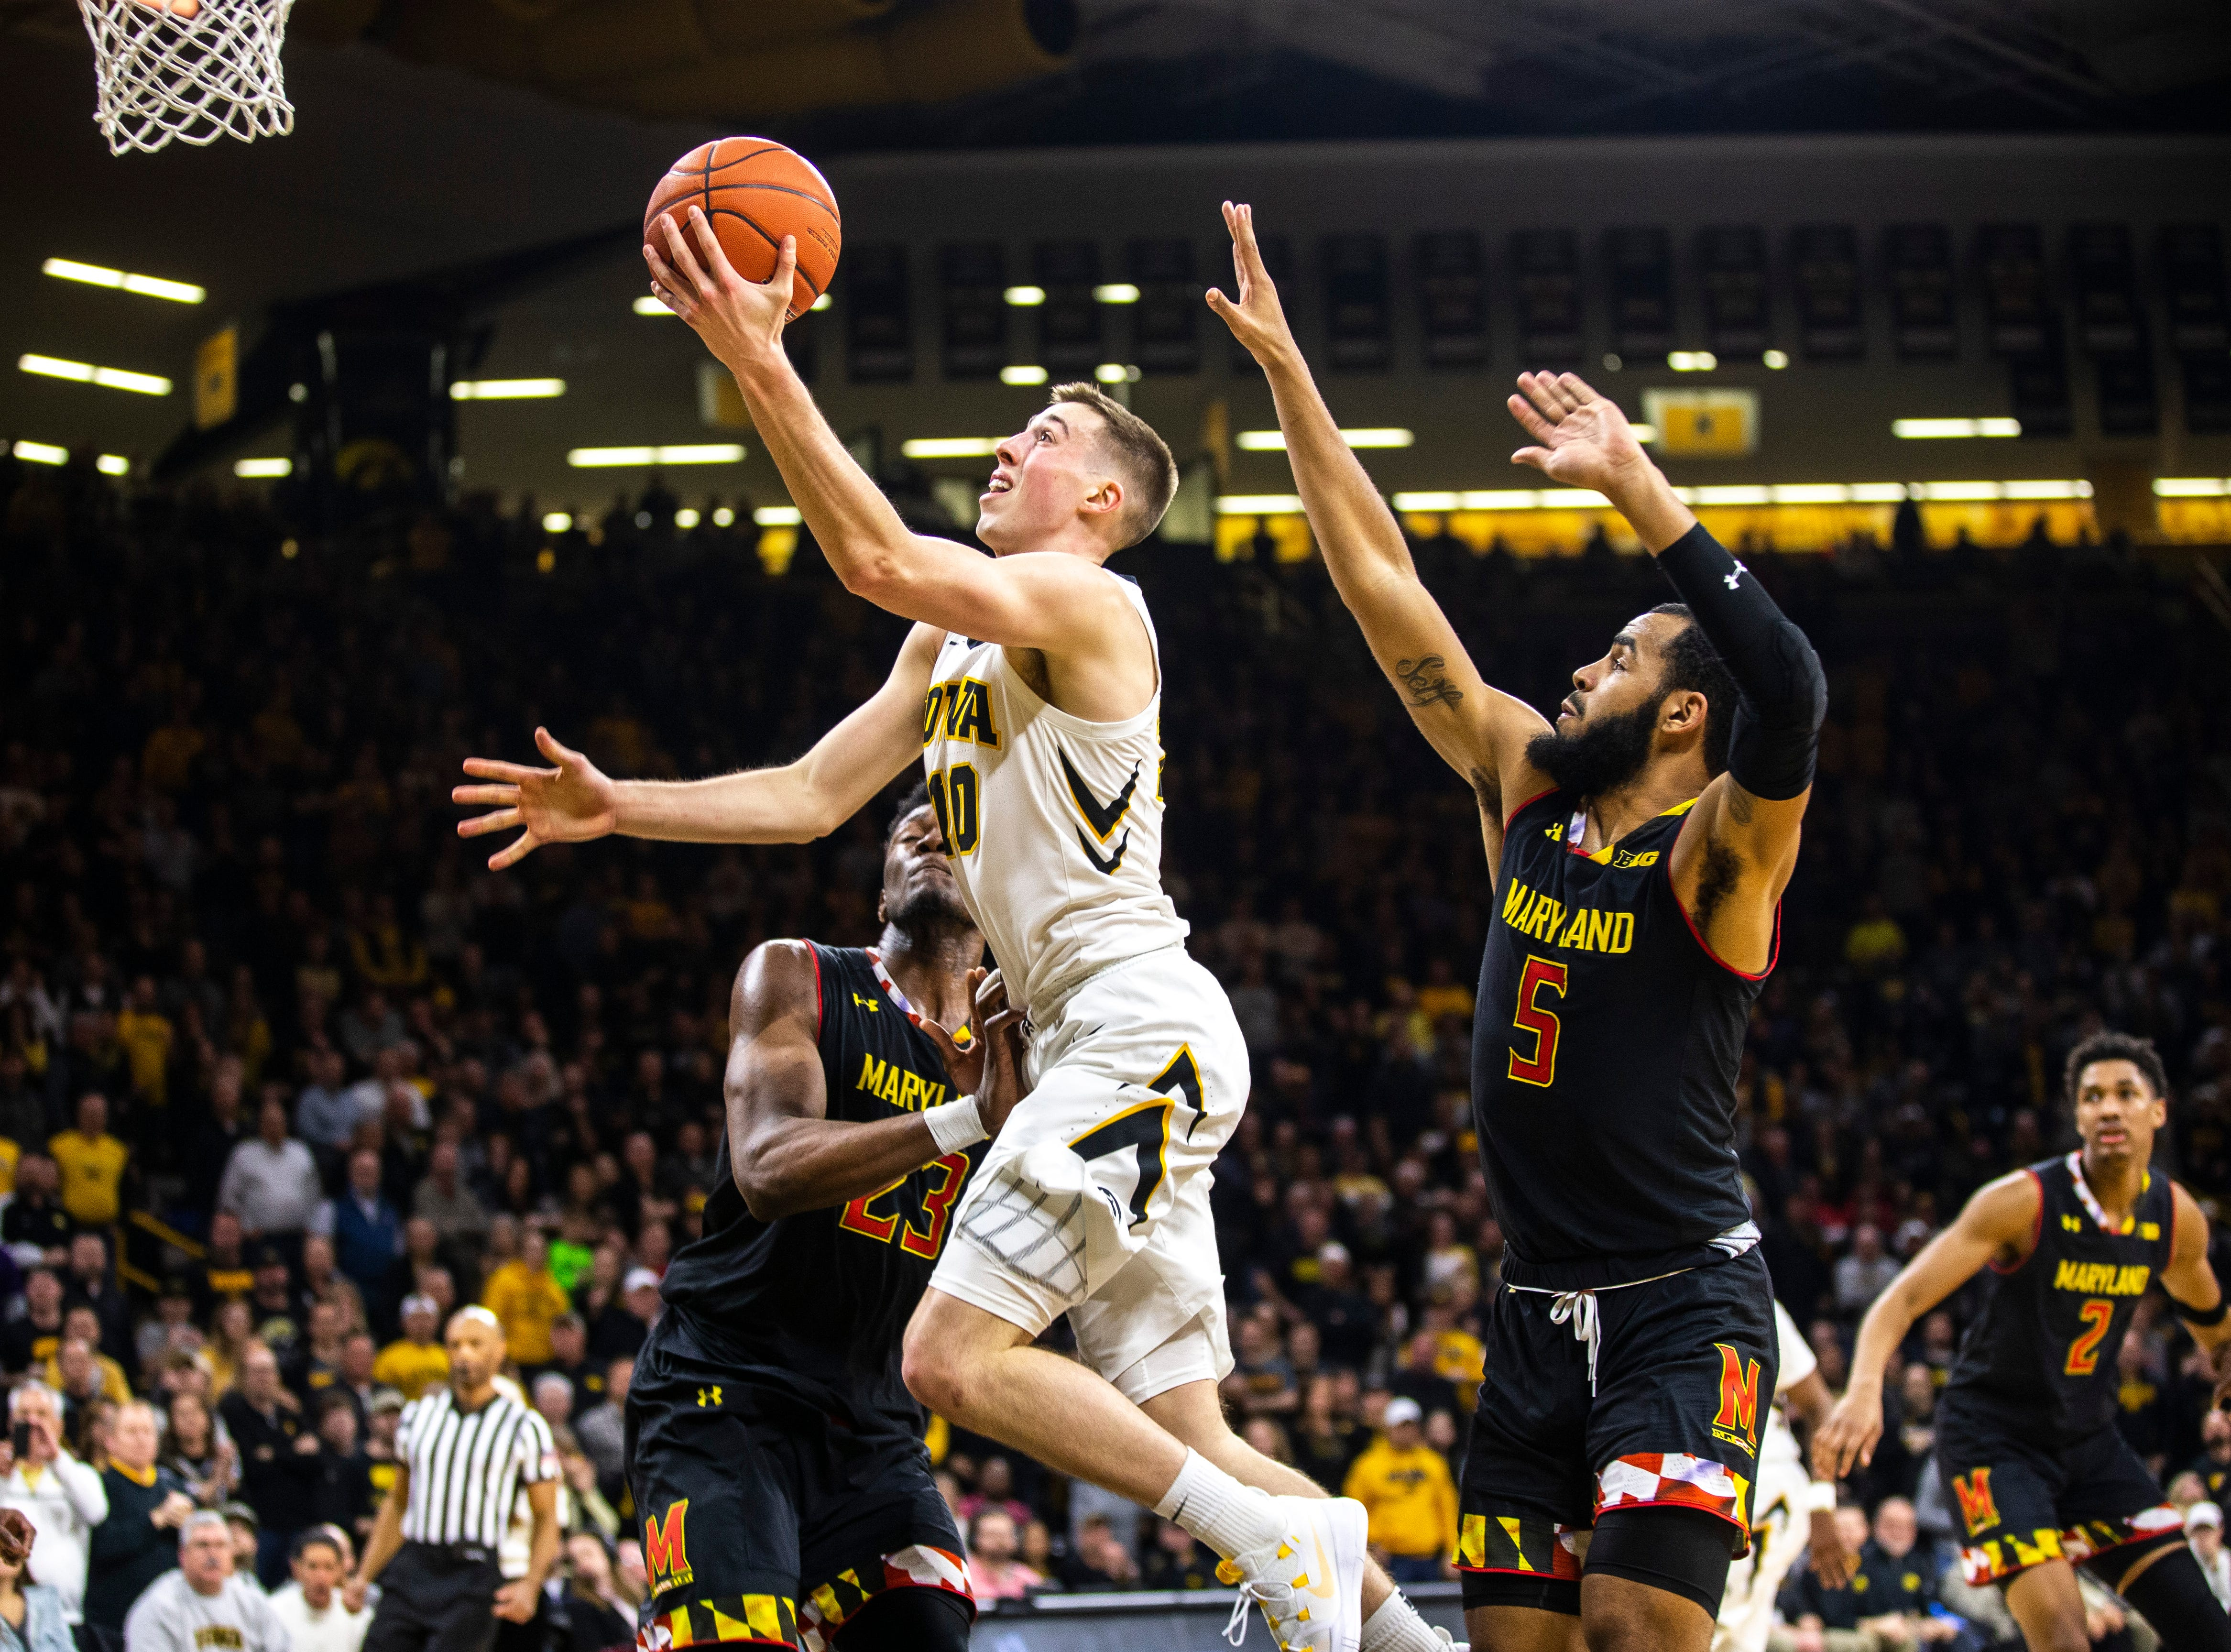 Iowa guard Joe Wieskamp (10) drives to the basket while Maryland forward Bruno Fernando (23) and Maryland guard Eric Ayala (5) defend during a NCAA Big Ten Conference men's basketball game on Tuesday, Feb. 19, 2019 at Carver-Hawkeye Arena in Iowa City, Iowa.